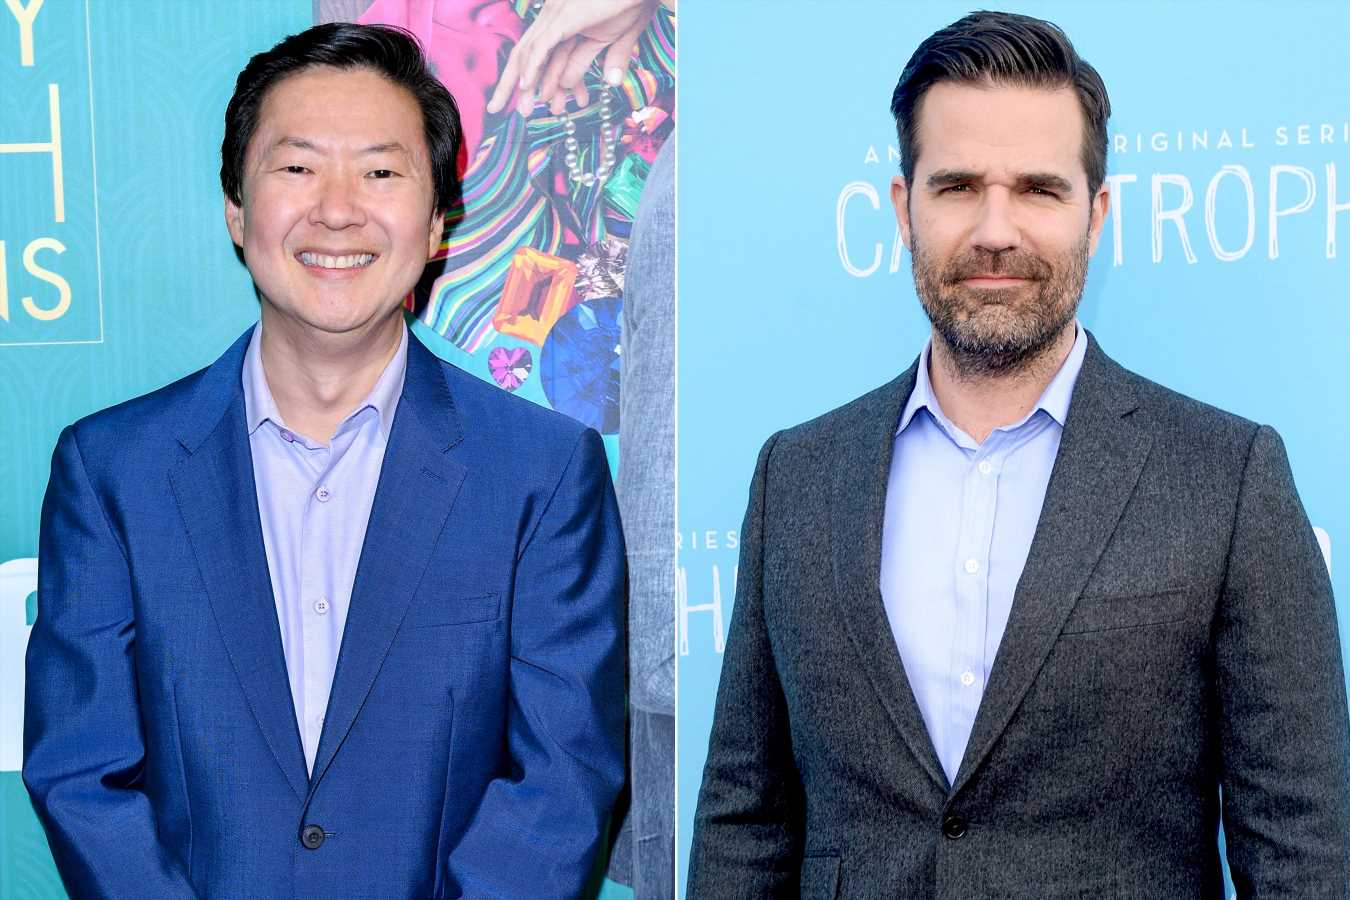 Ken Jeong, Rob Delaney, more added to Tom and Jerry cast